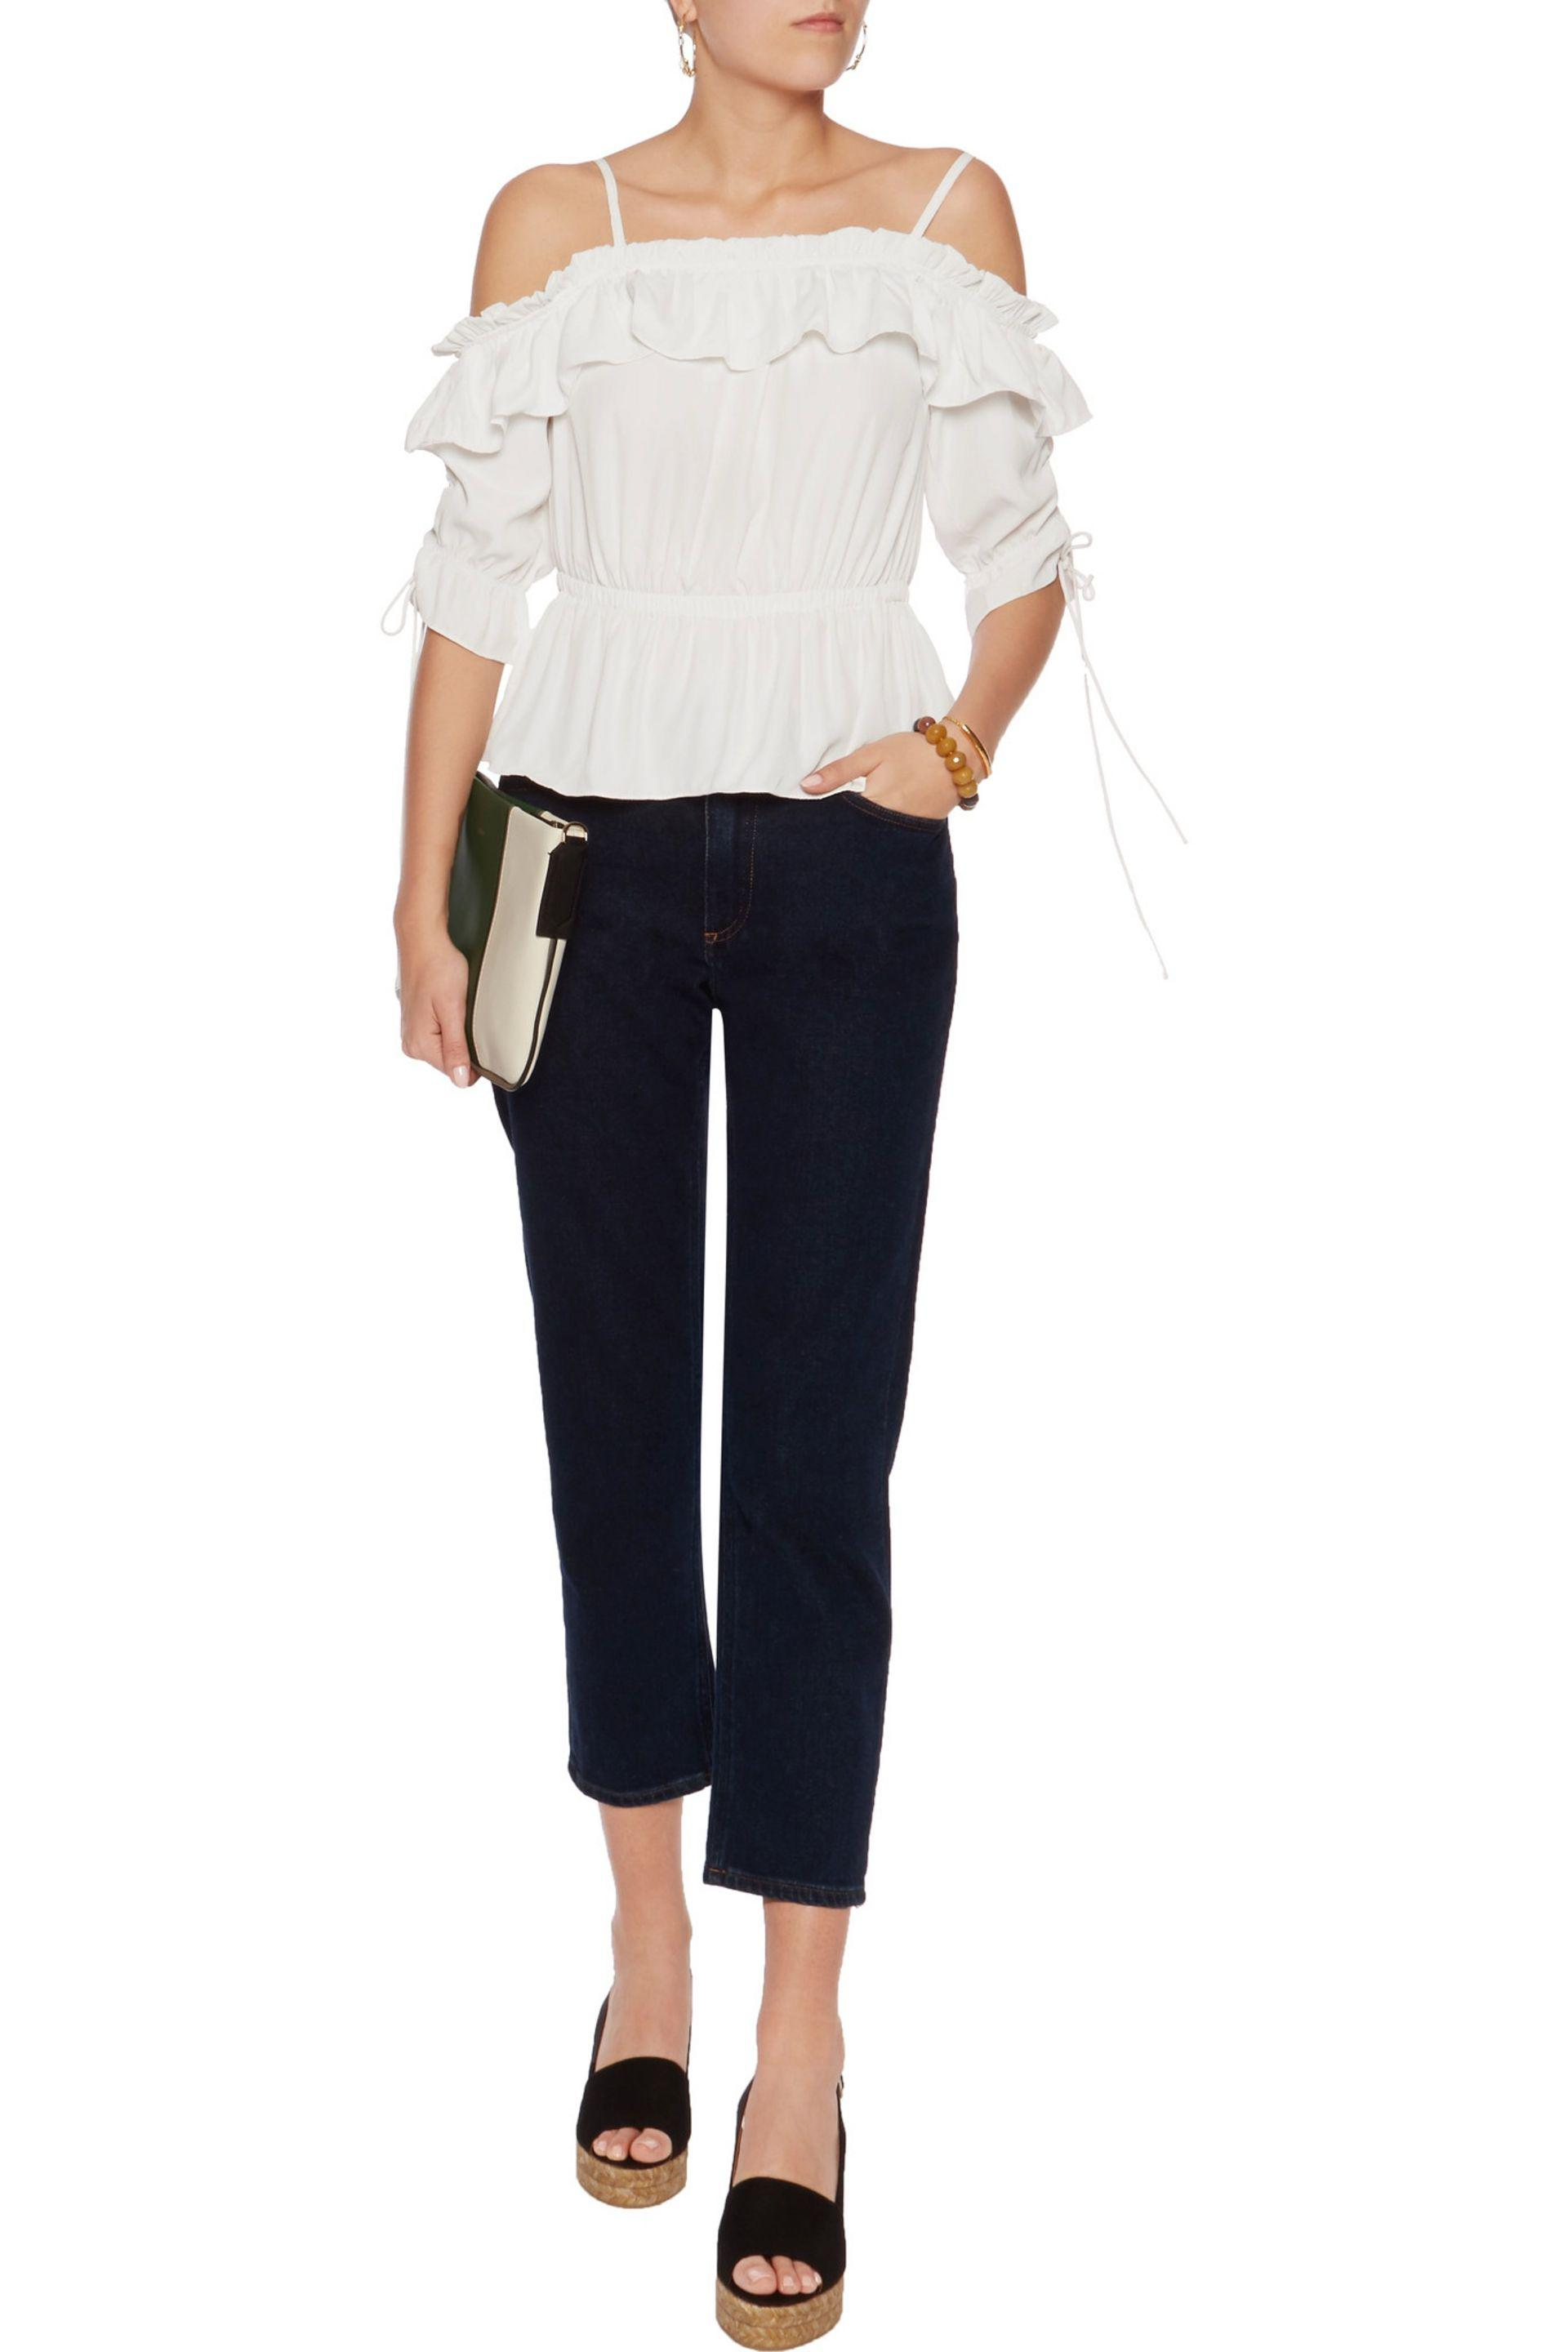 W118 by Walter Baker Synthetic Jenni Cold-shoulder Ruffled Crepe De Chine Peplum Top in White